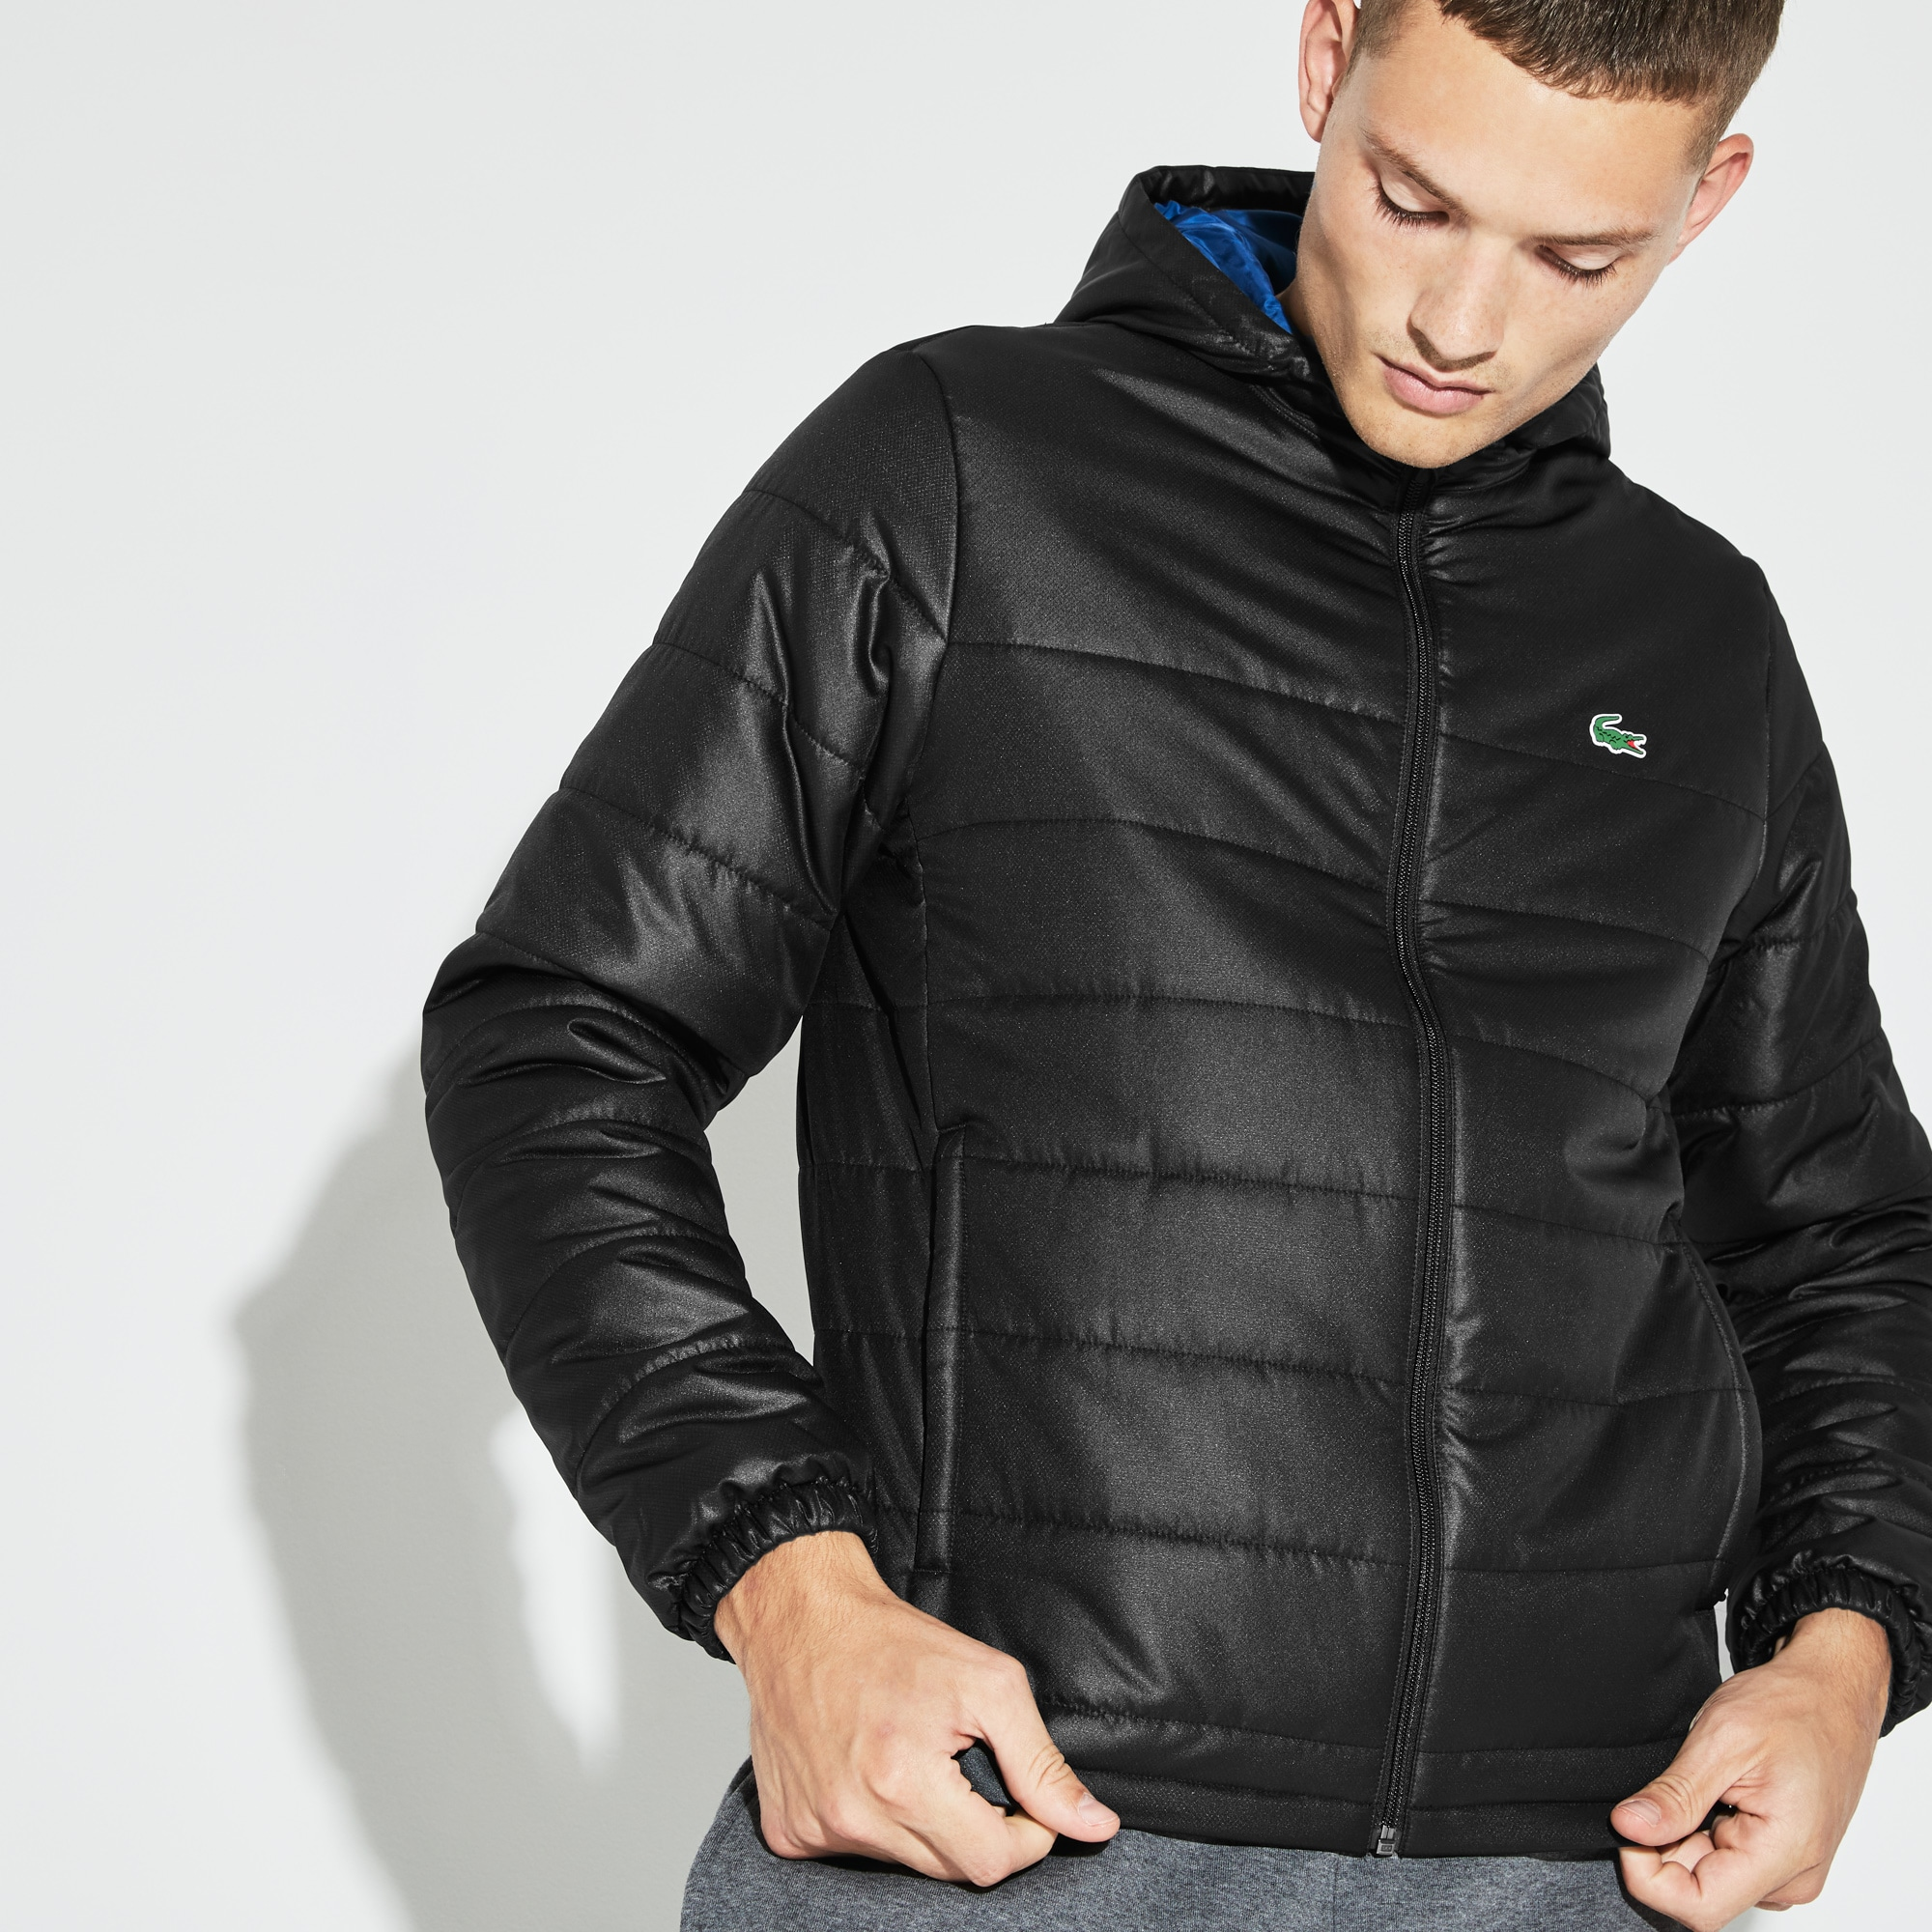 Men's SPORT Hooded Water-Resistant Taffeta Tennis Jacket